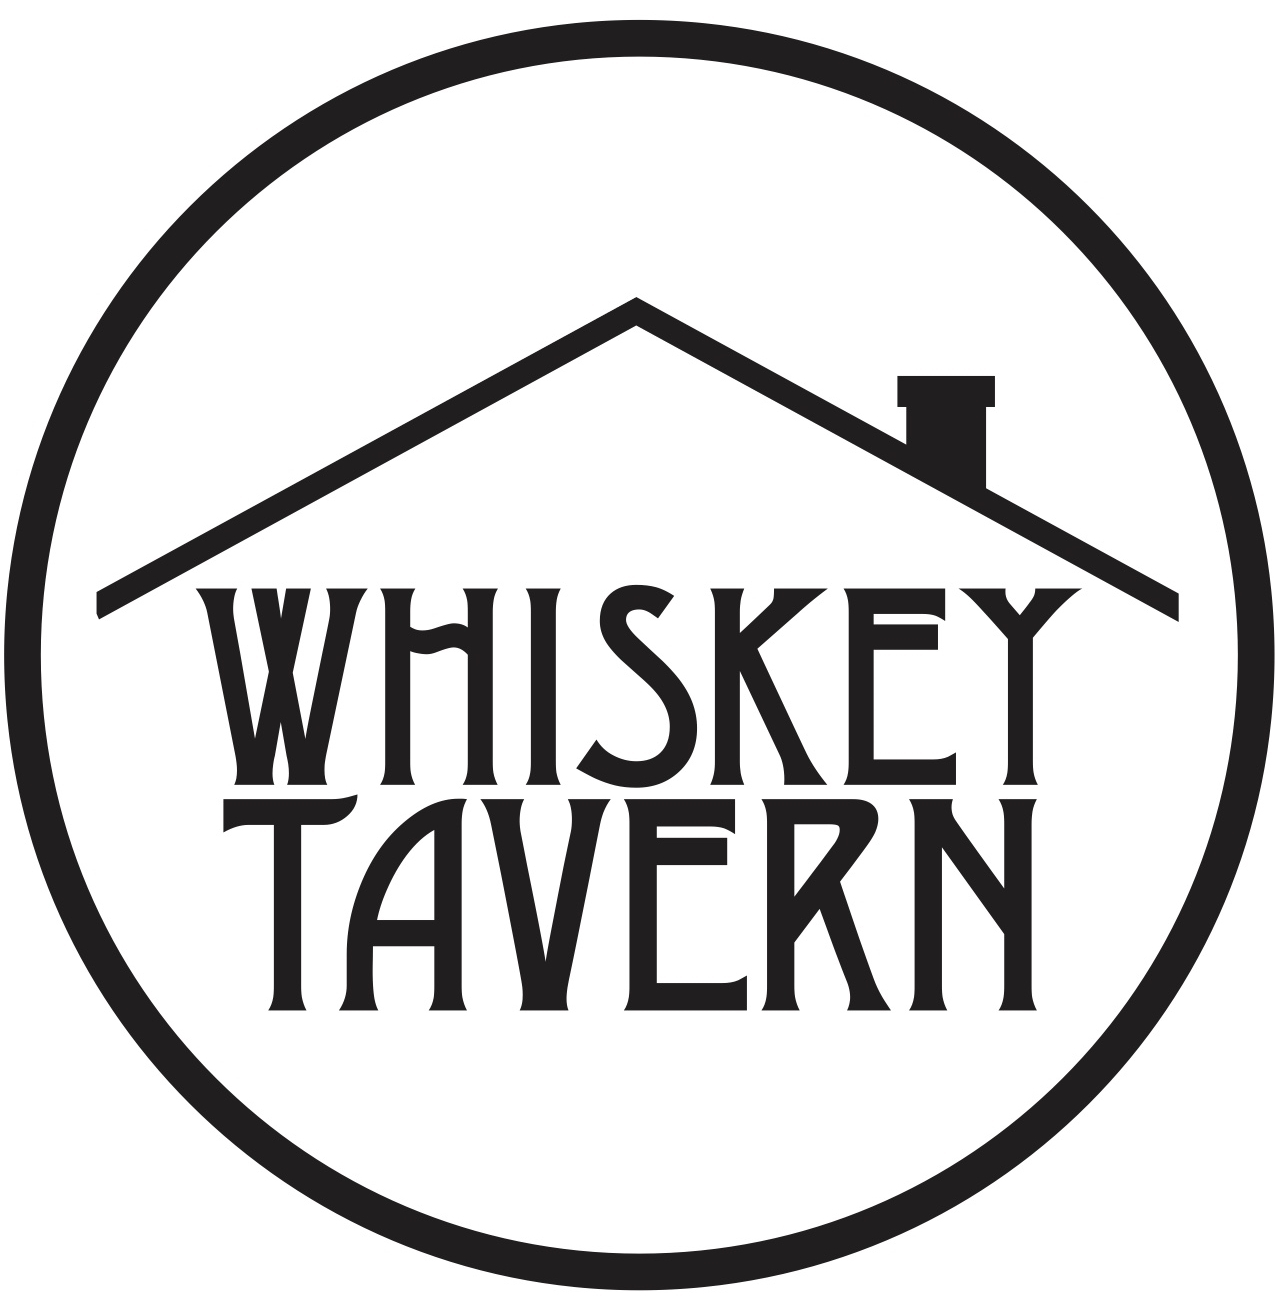 whiskeytavern_logo.jpg